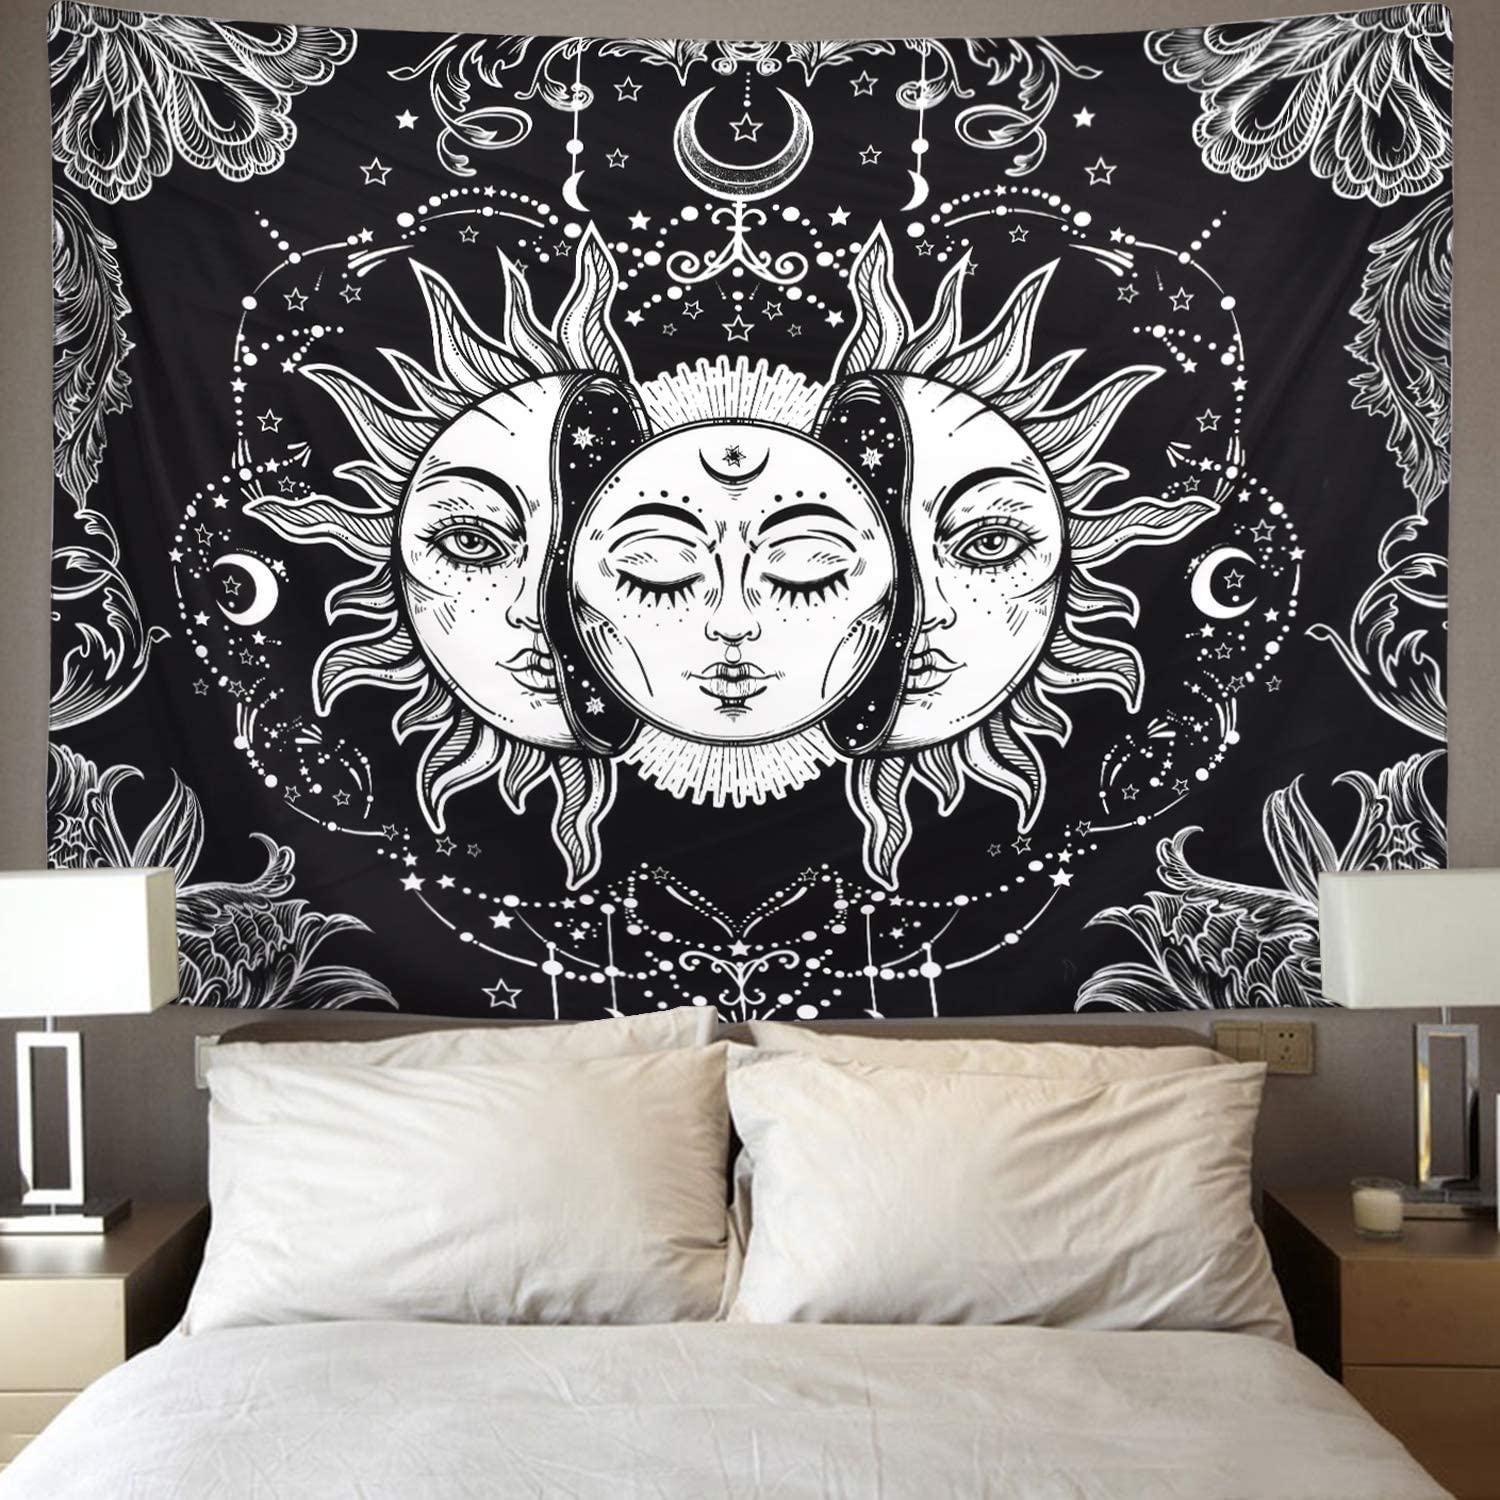 XL:92 x 71 Sun and Moon Tapestry Burning Sun with Star Tapestry Psychedelic Tapestry Black and White Mystic Tapestry Wall Hanging